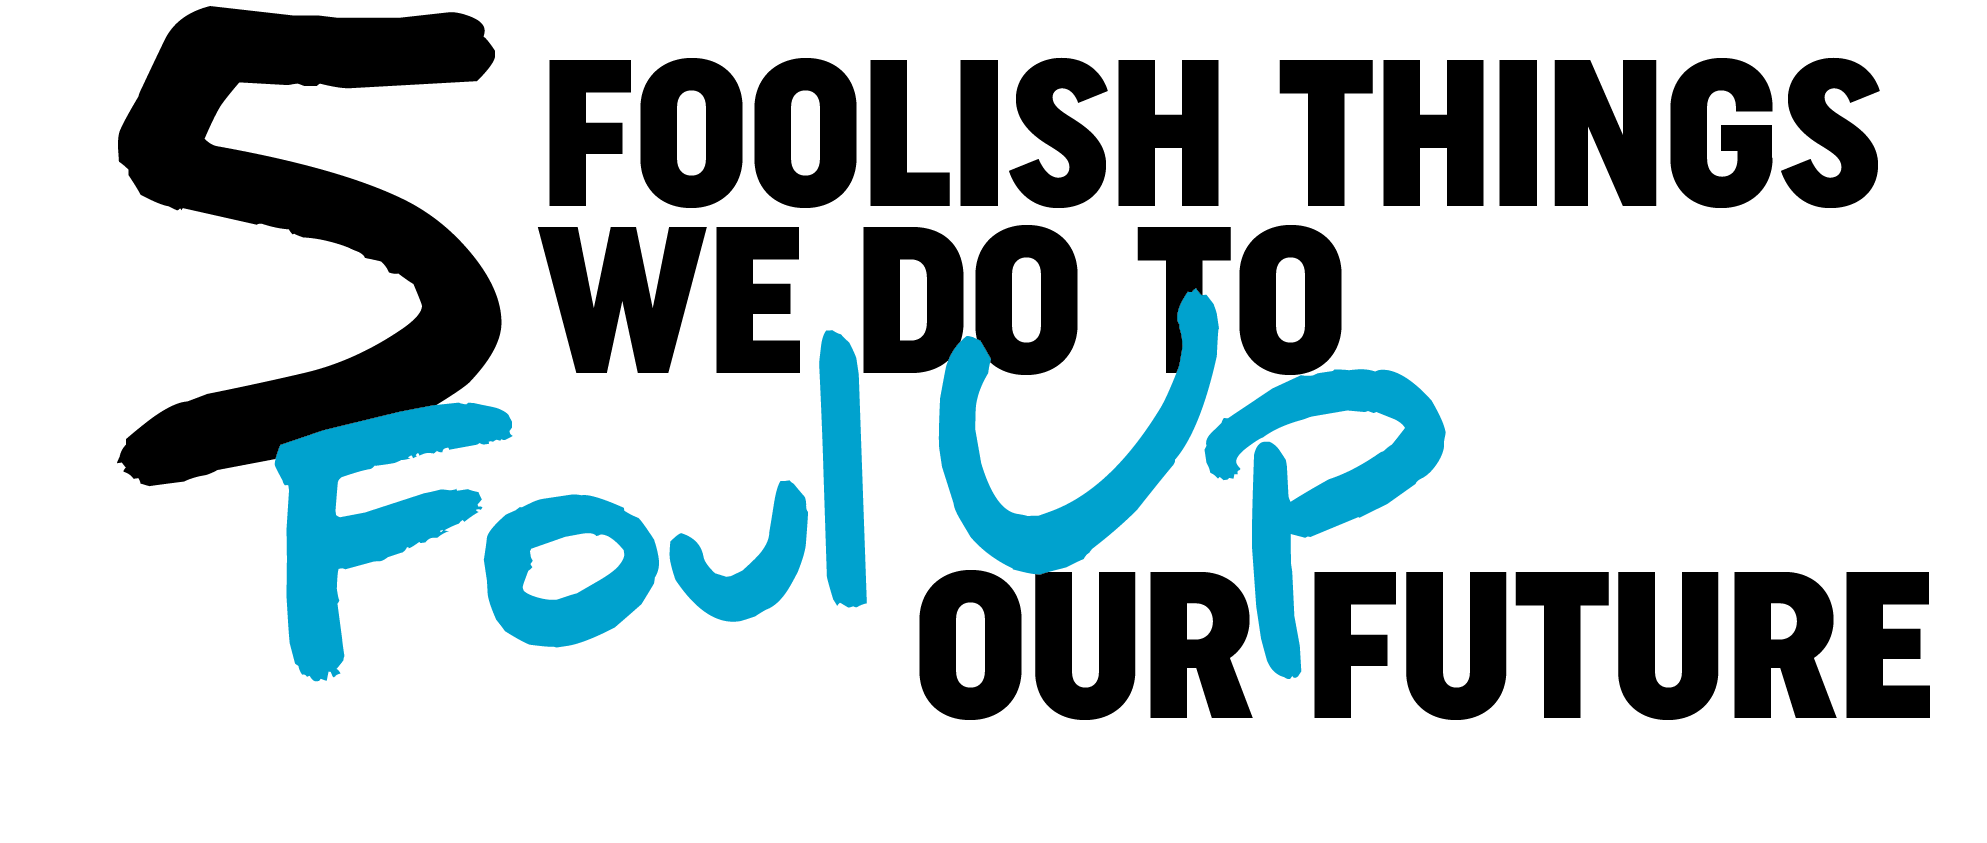 Five Foolish Things We Do to Foul Up Our Future